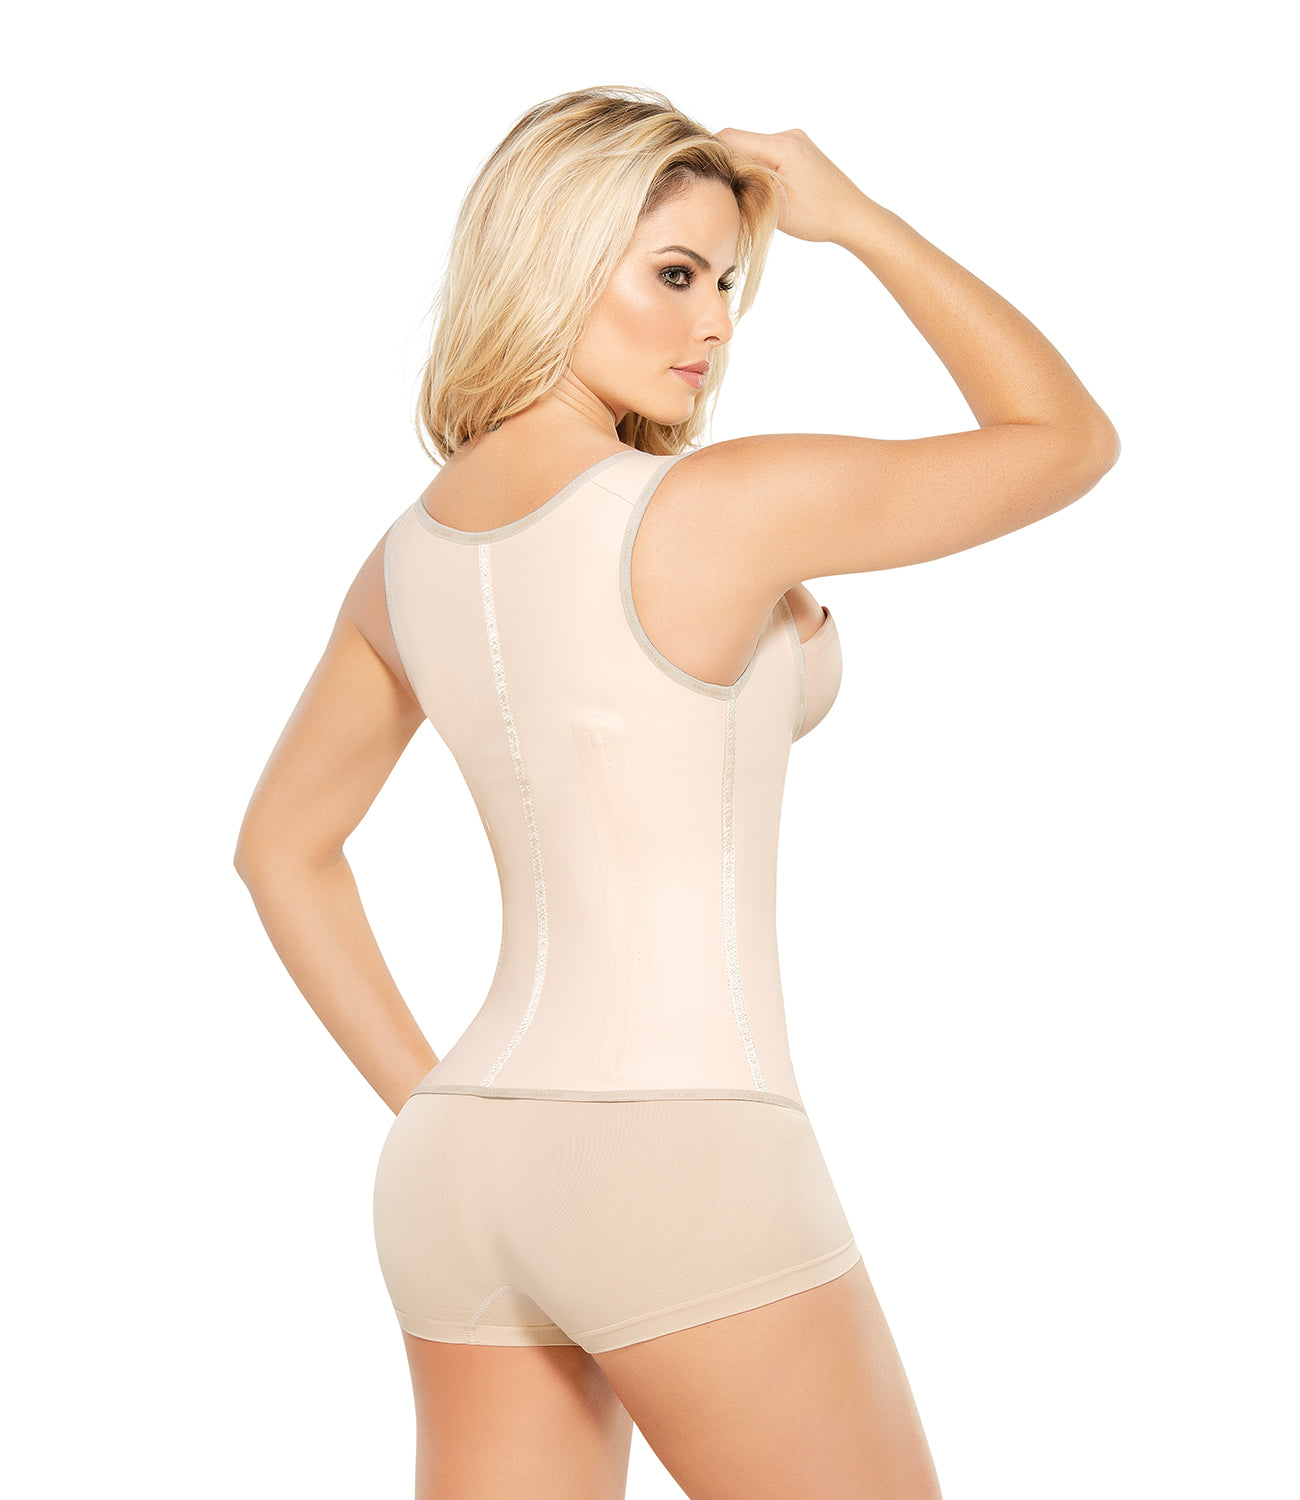 Ann Chery 2027 Chaleco Latex Faja Reductora Waist Training Vest